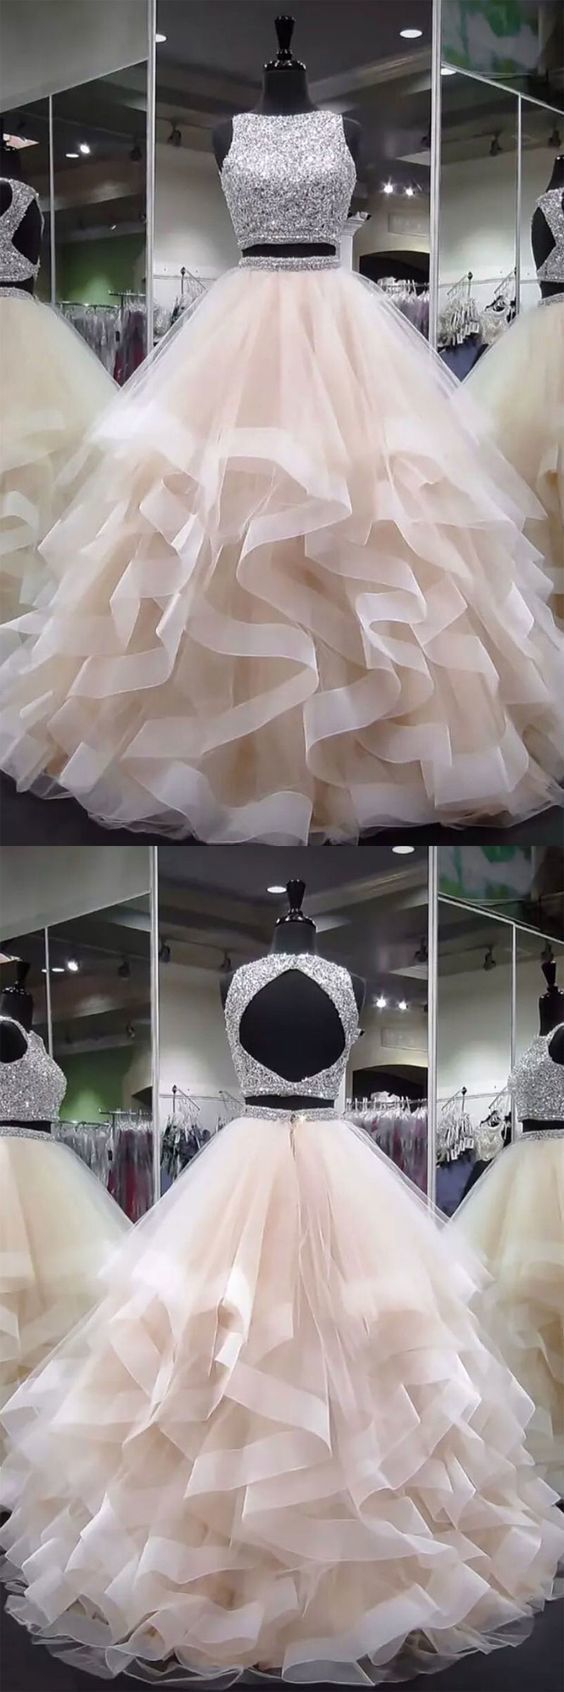 53c8d7792d2 Elegant Ball Gown Two Piece Scoop Open Back Champagne Tulle Long Prom  Dresses with Beading